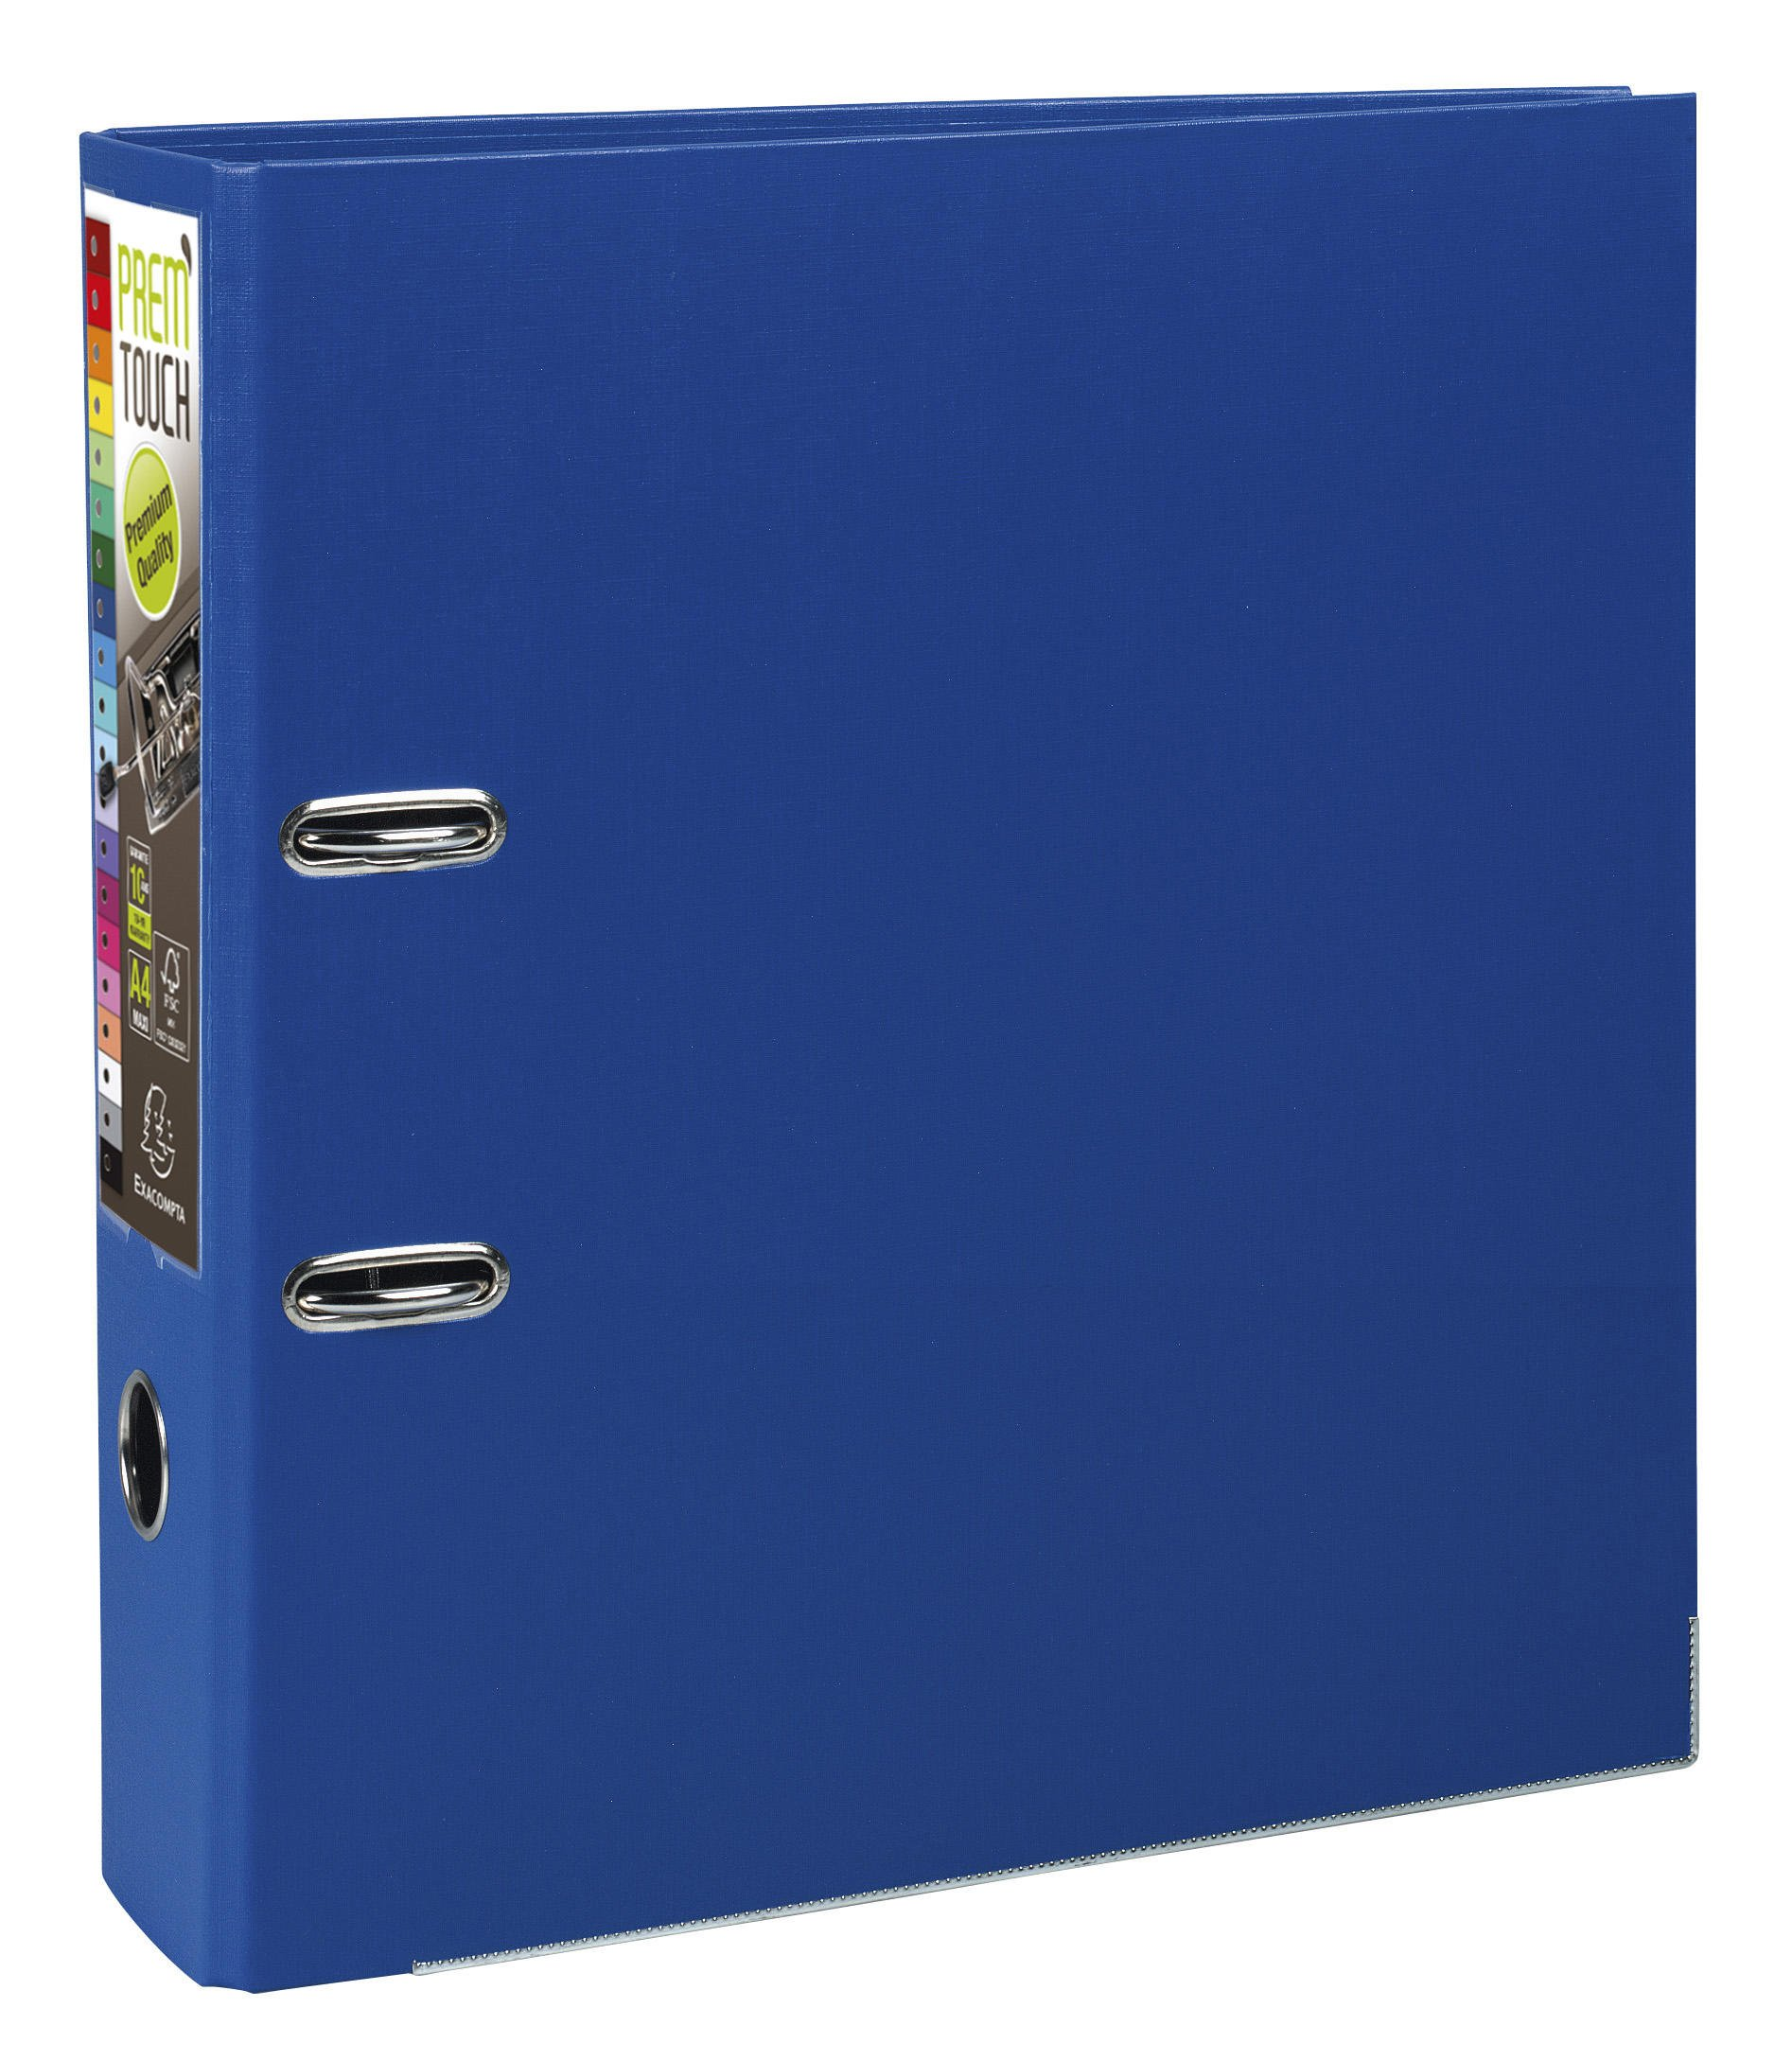 Exacompta A4 Maxi Prem'Touch PP Lever Arch File, 80 mm Spine, Dark Blue